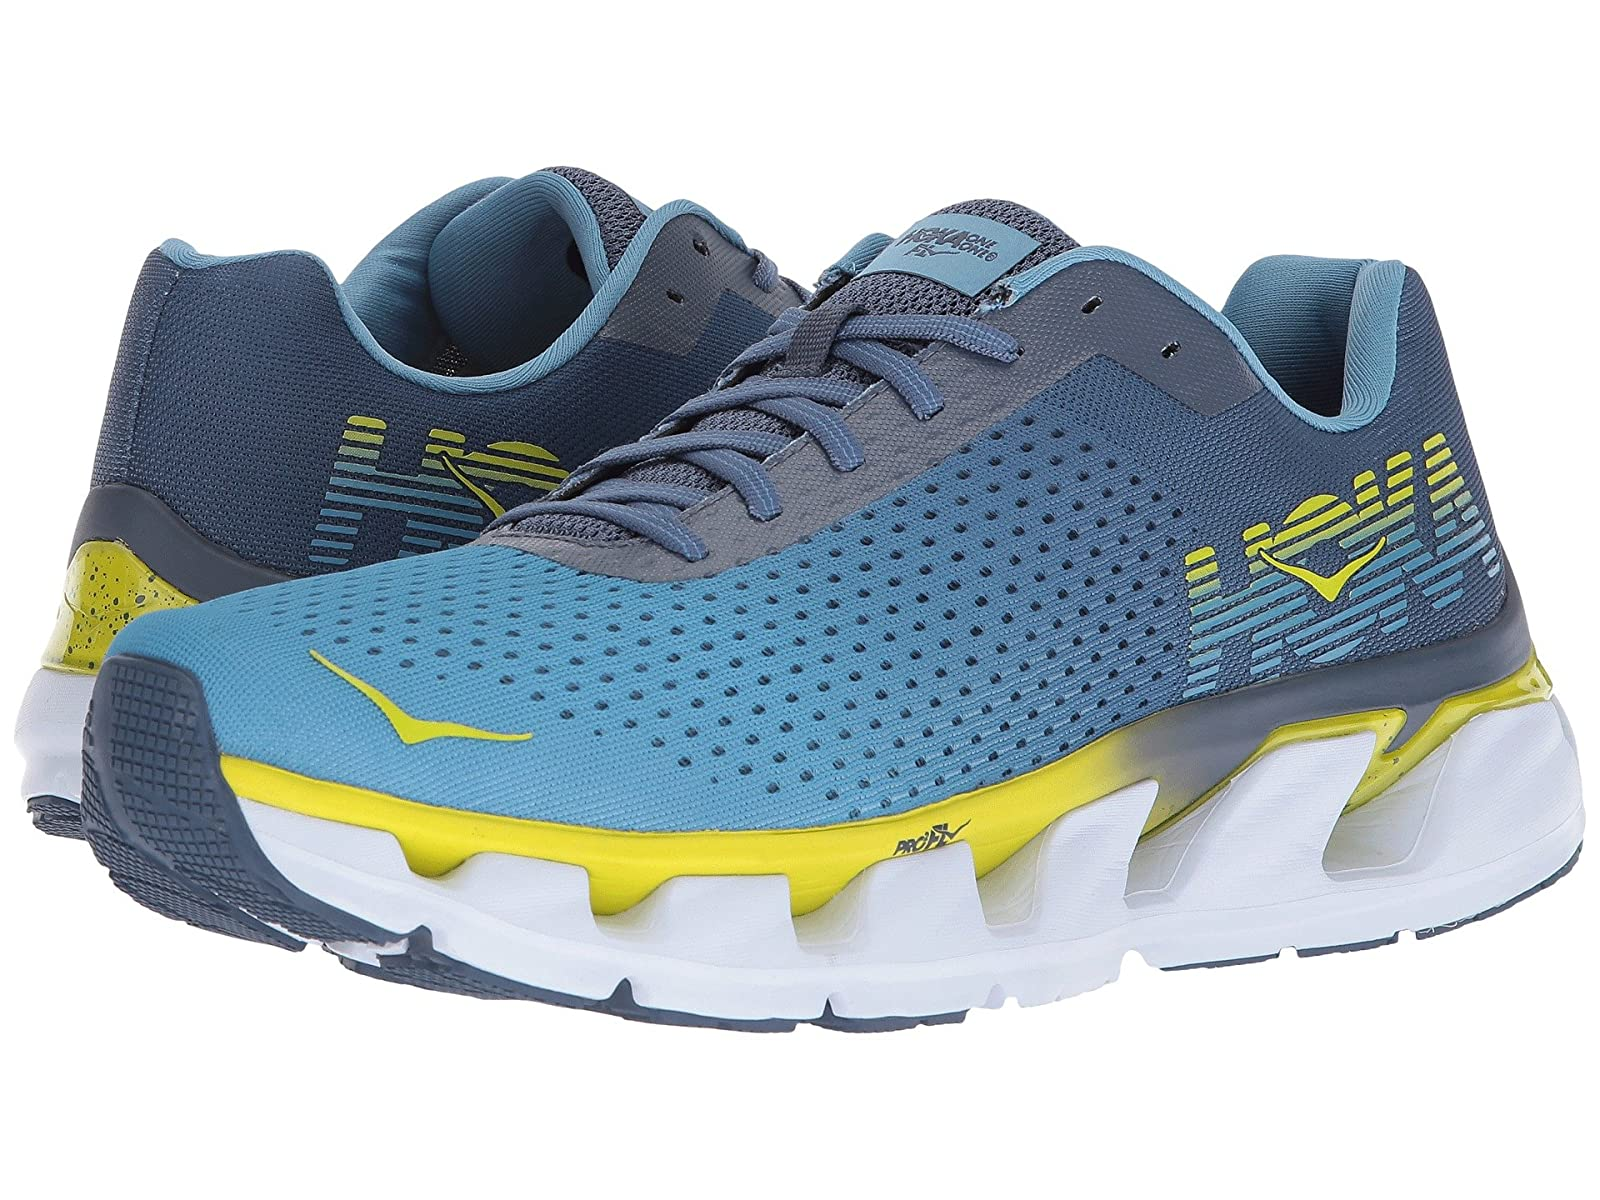 Hoka One One ElevonAtmospheric grades have affordable shoes